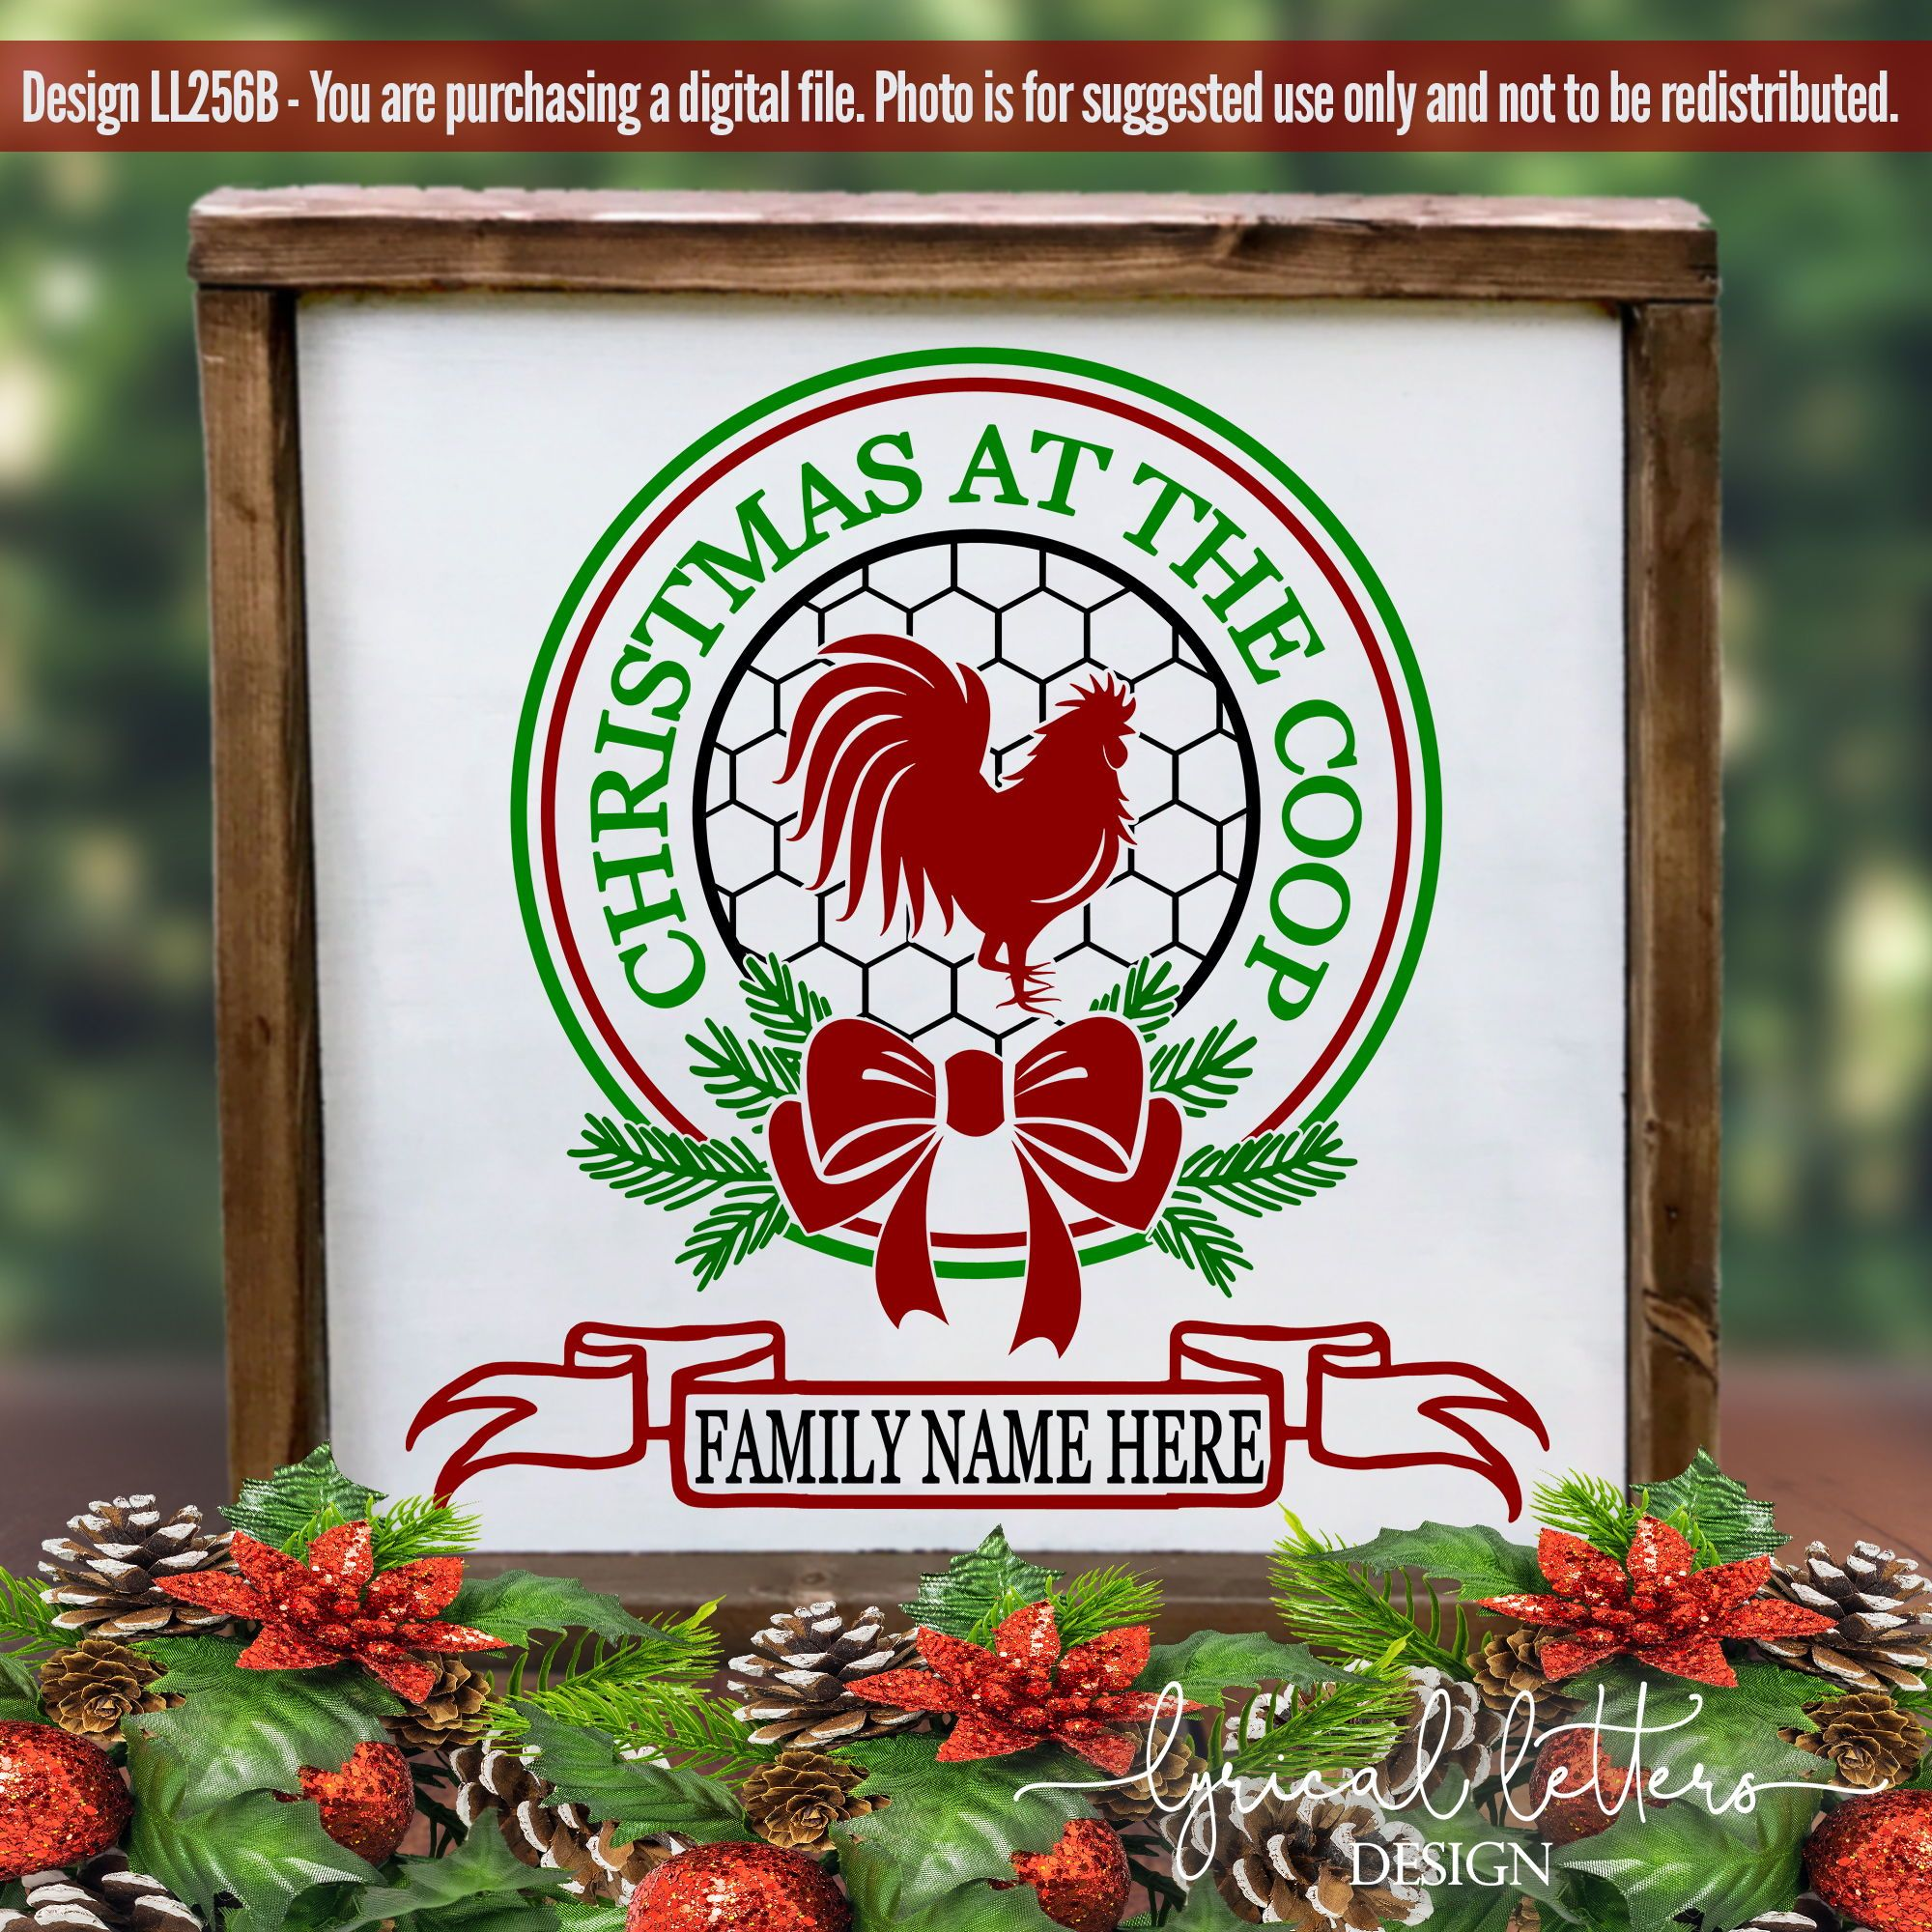 Farmhouse Christmas at the Coop SVG DXF LL256B Christmas